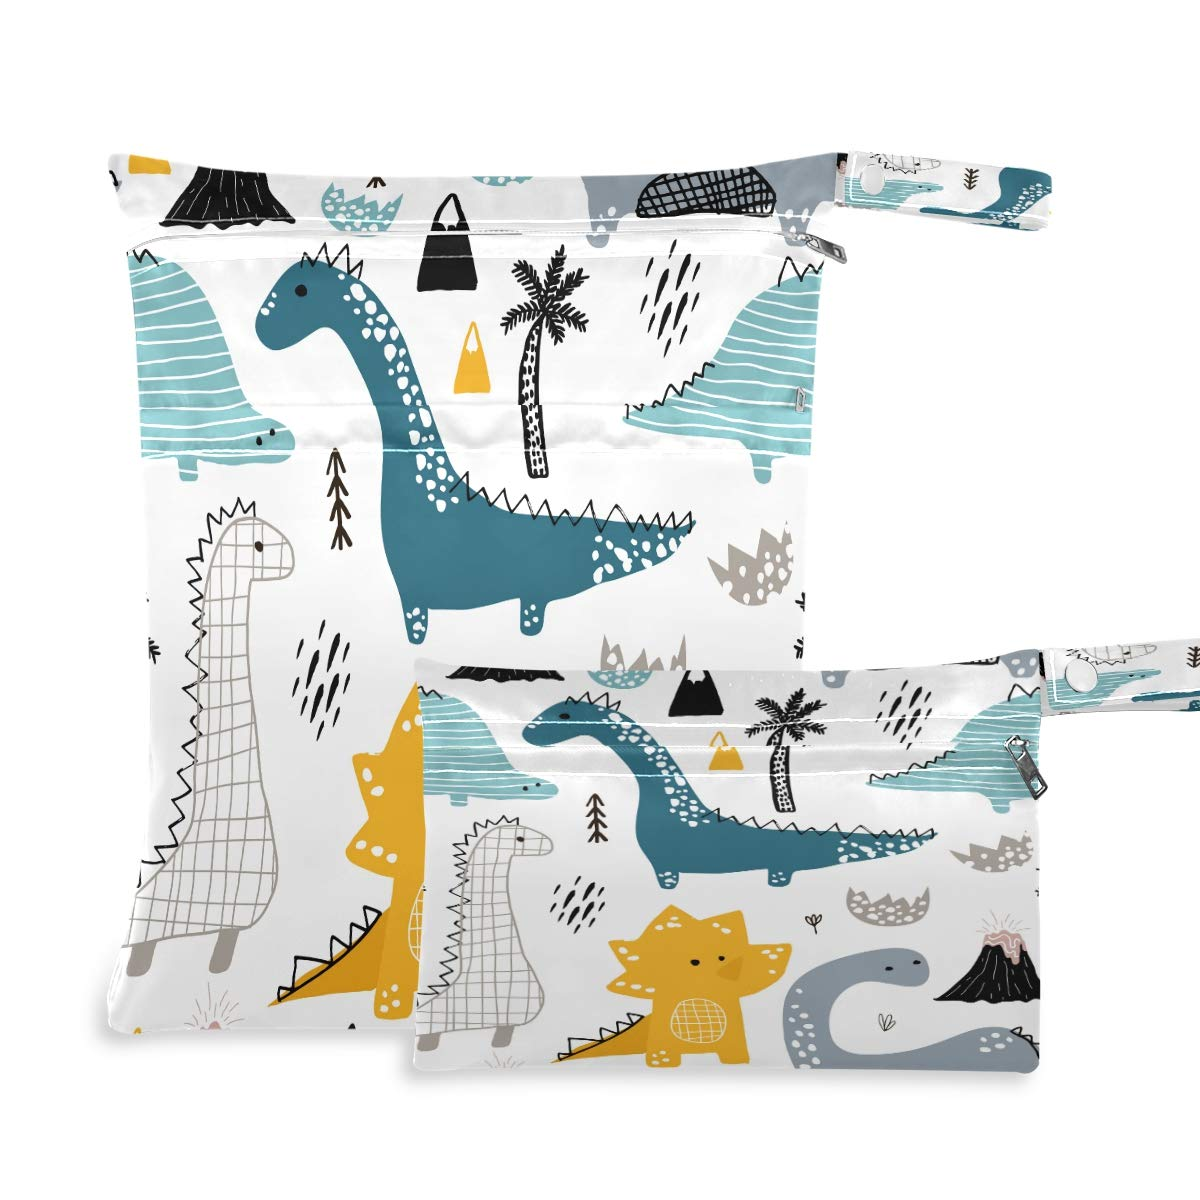 Ombra Waterproof Wet Dry Bag 2 Pack Cute Animal Cartoon Dinosaur Cloth Diaper Bag Organizer Pouch Set with Zipper Pocket Washable Wet Bag for Travel Hiking Swimsuit